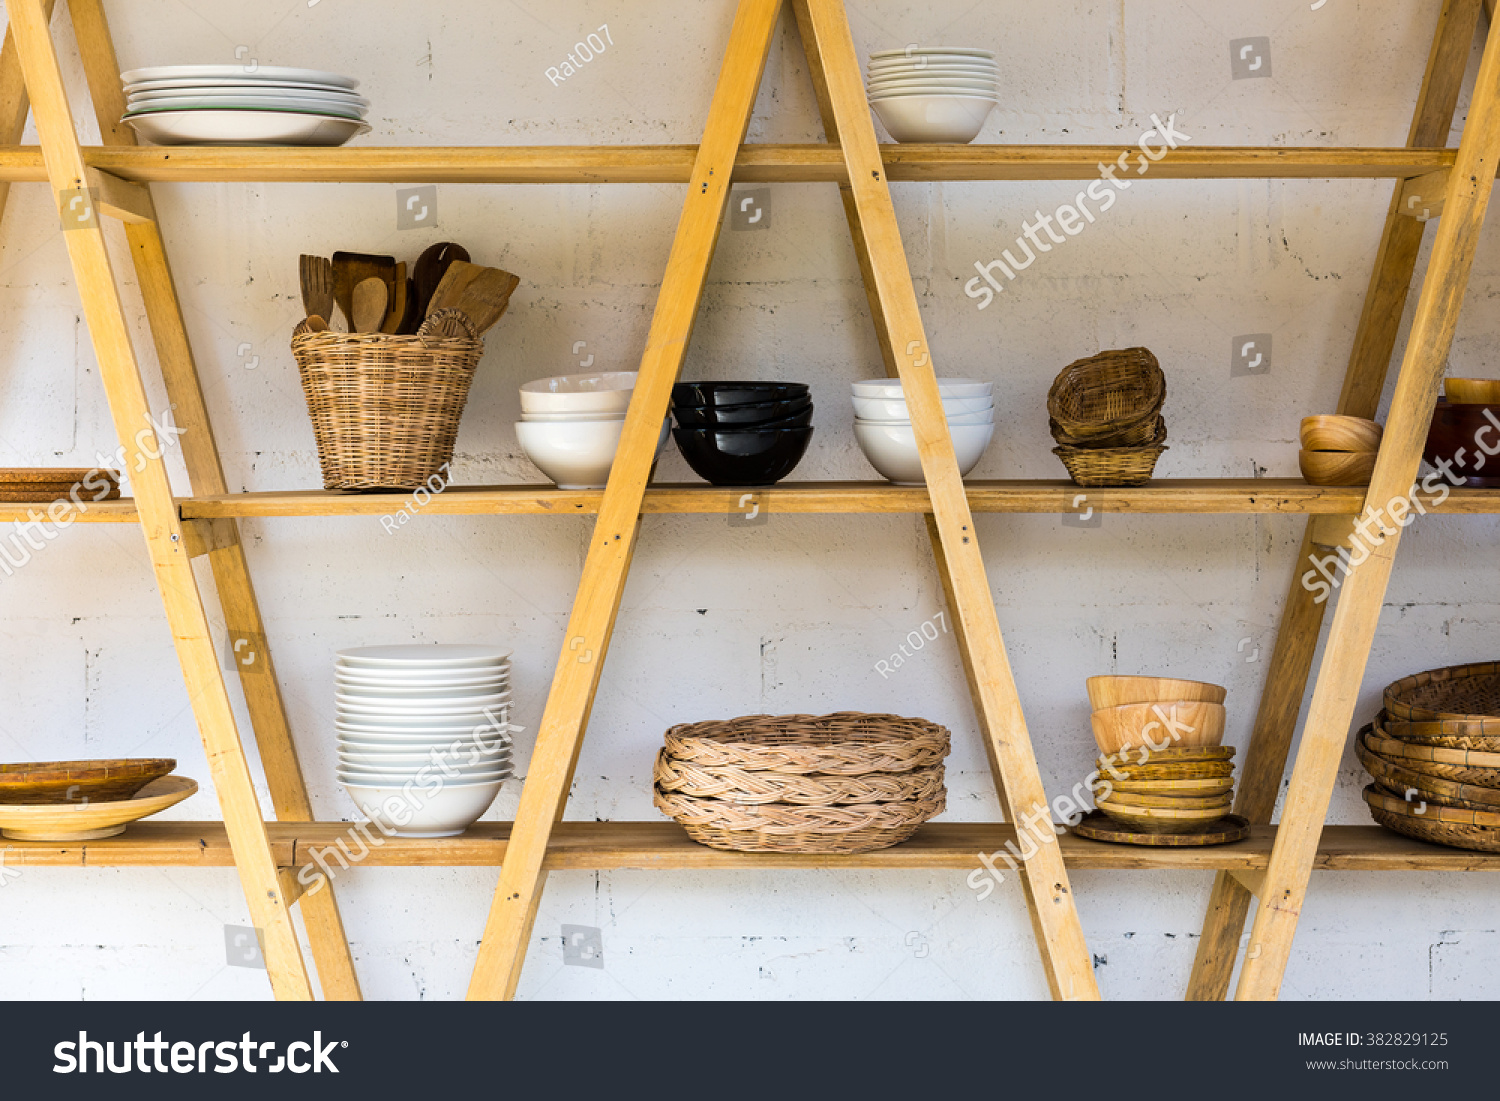 kitchen wood shelf with home kitchen wares - Kitchen Wares